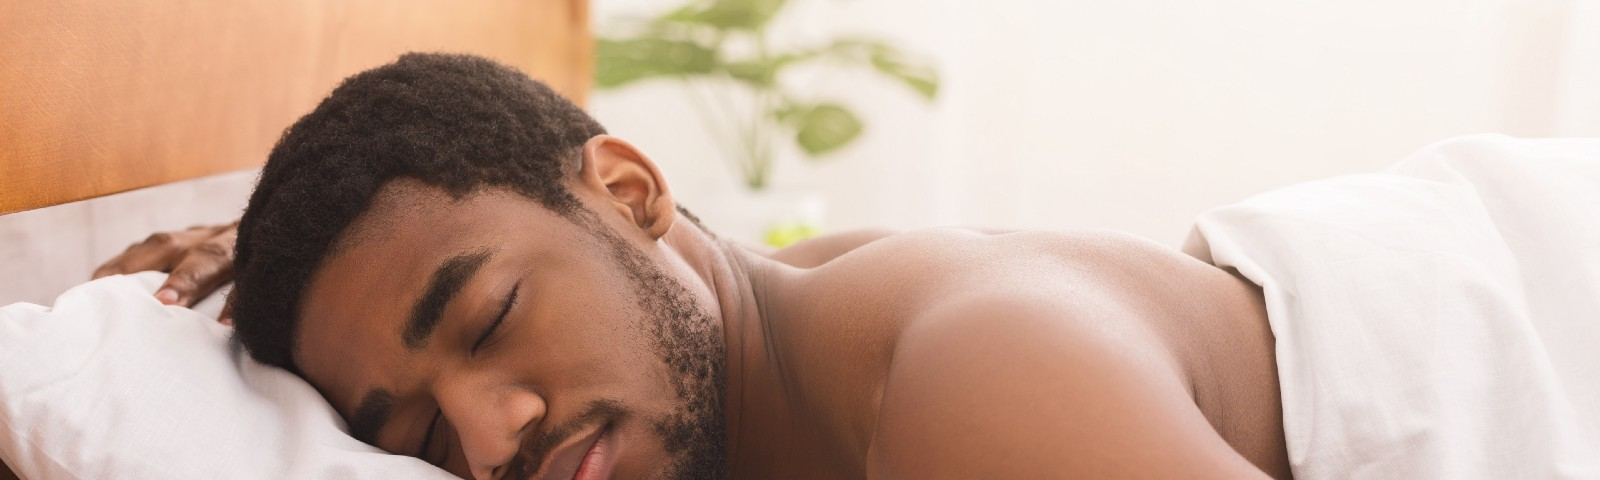 An African-American man sleeping naked under the covers on his stomach in bed at home.